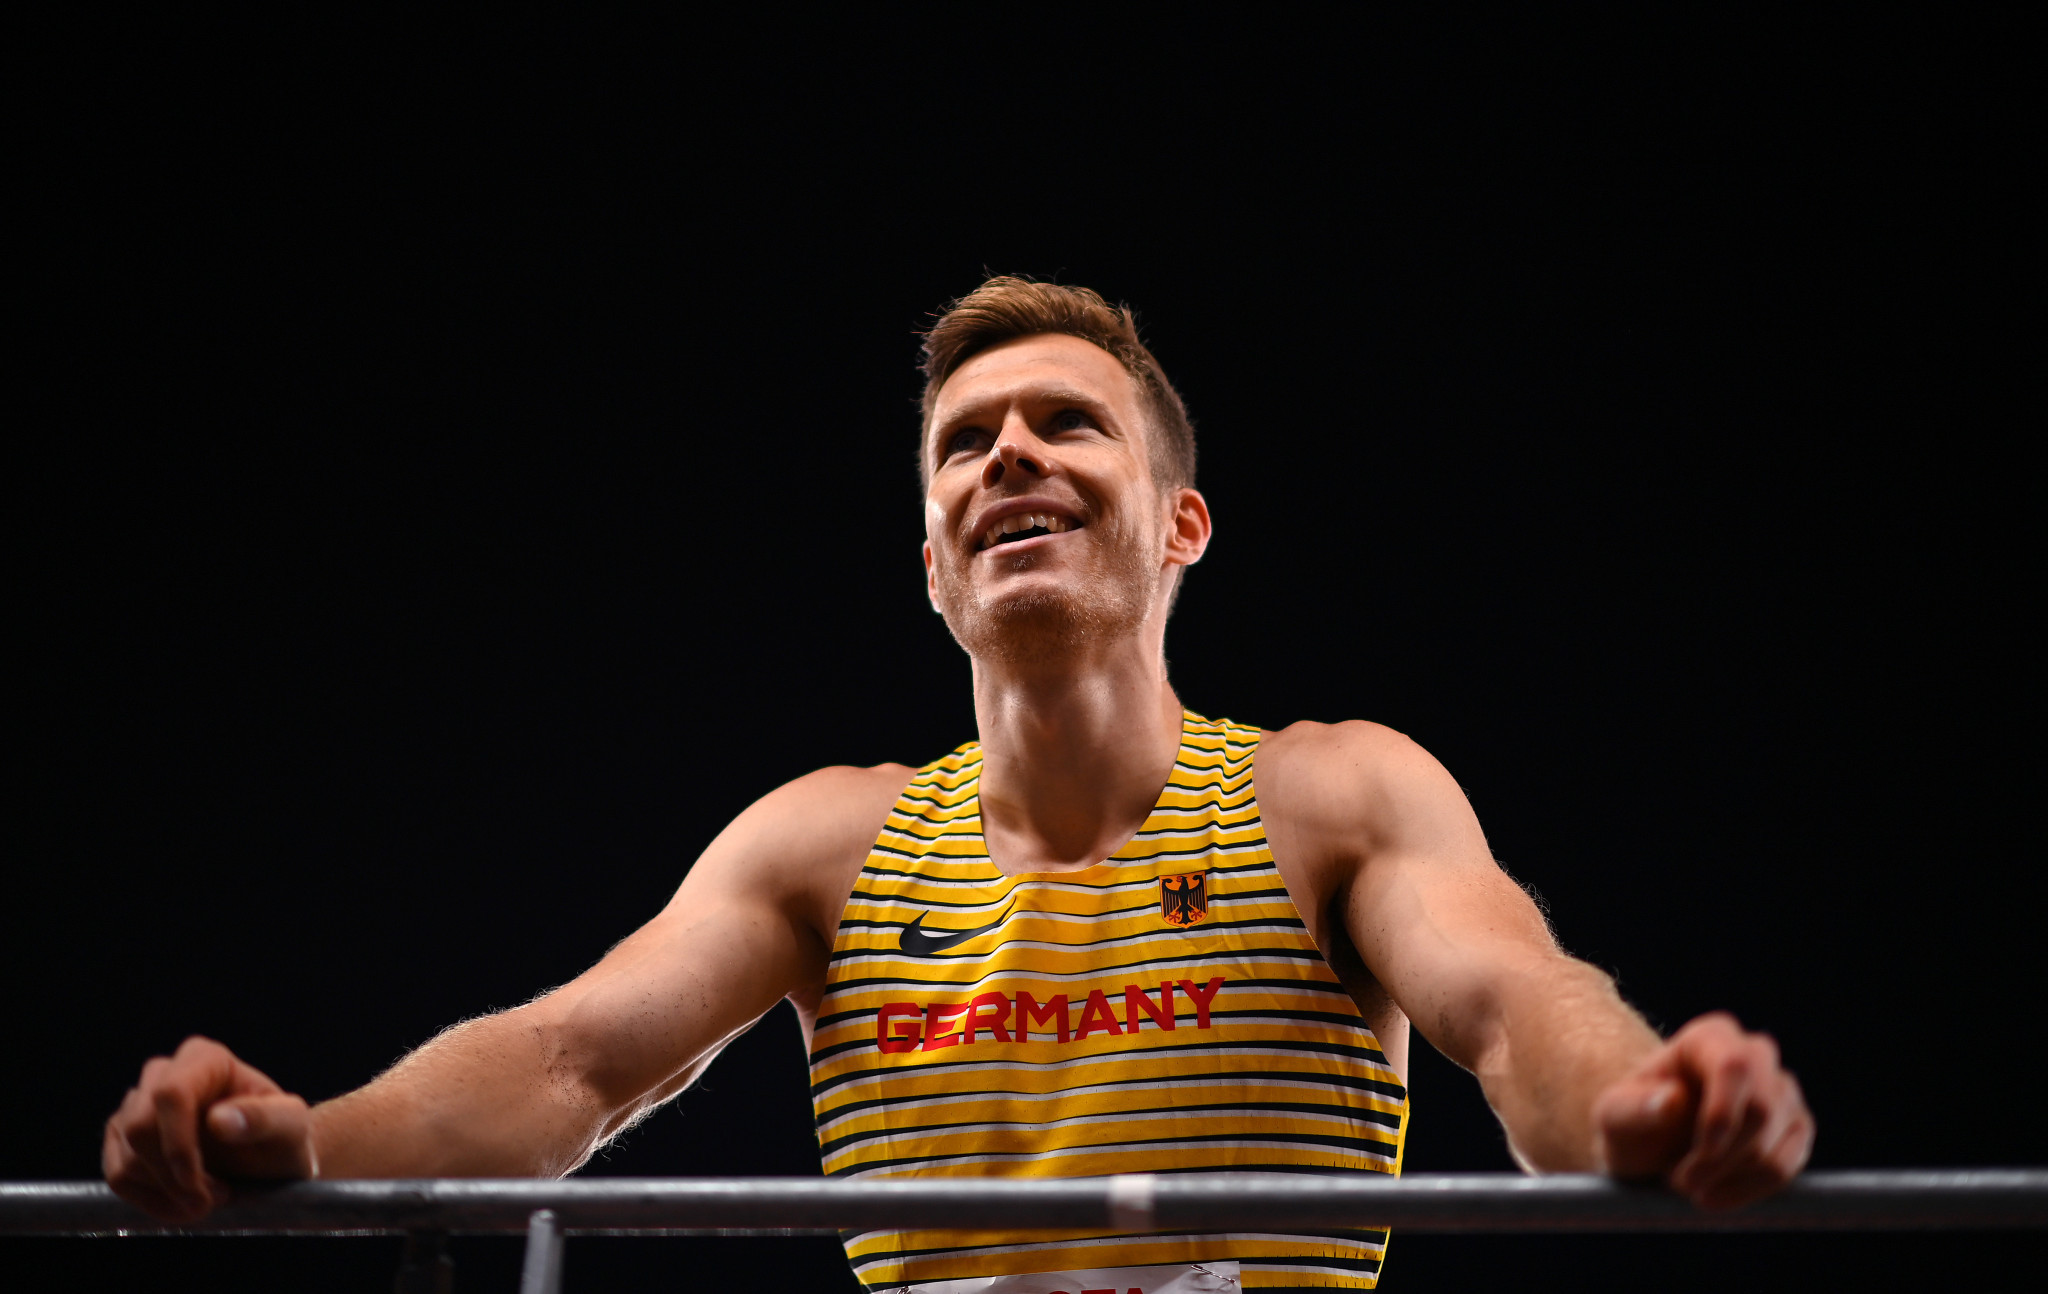 Four-time Paralympic champion Markus Rehm calls for more joint competitions featuring athletes and Para athletes